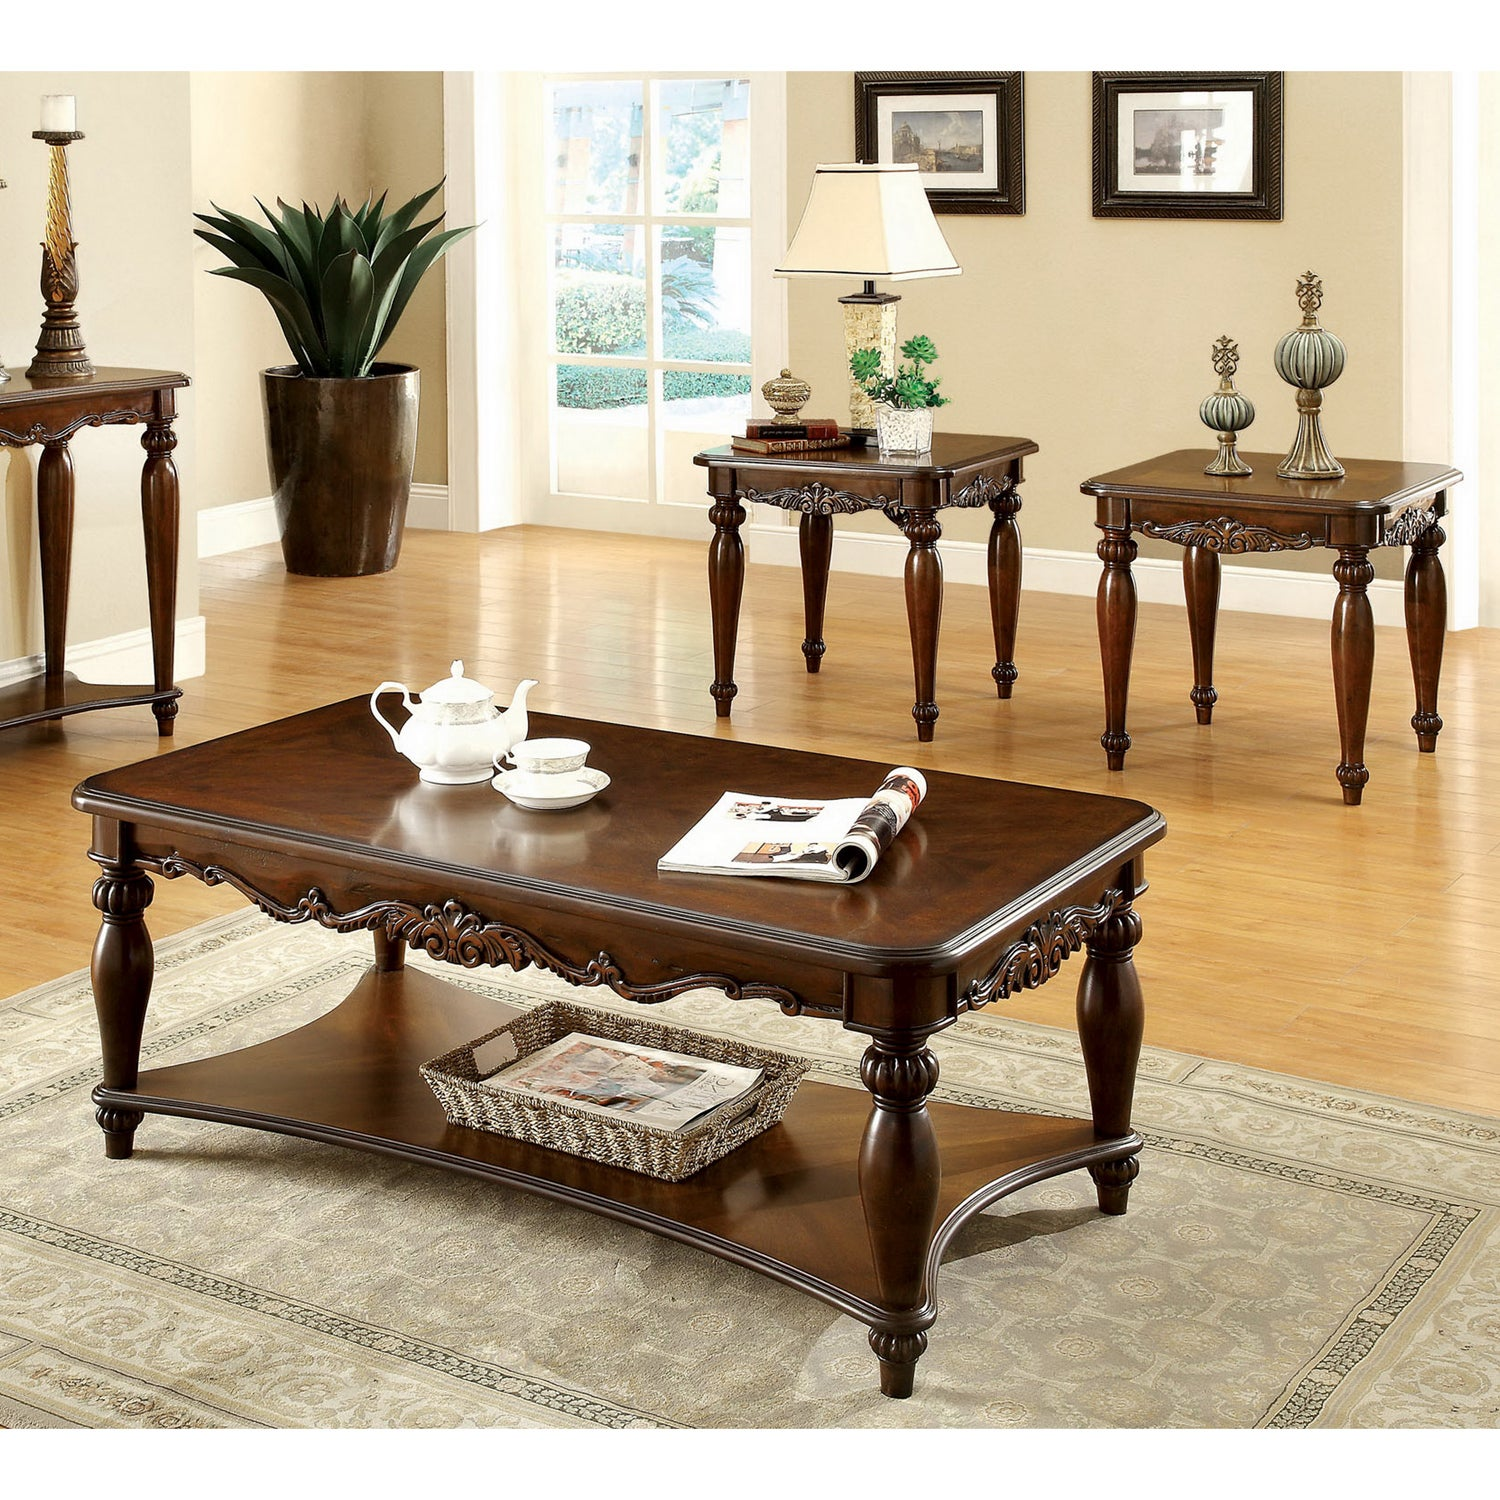 Furniture of America 'Macelli' 3-piece Cherry Finished Tr...